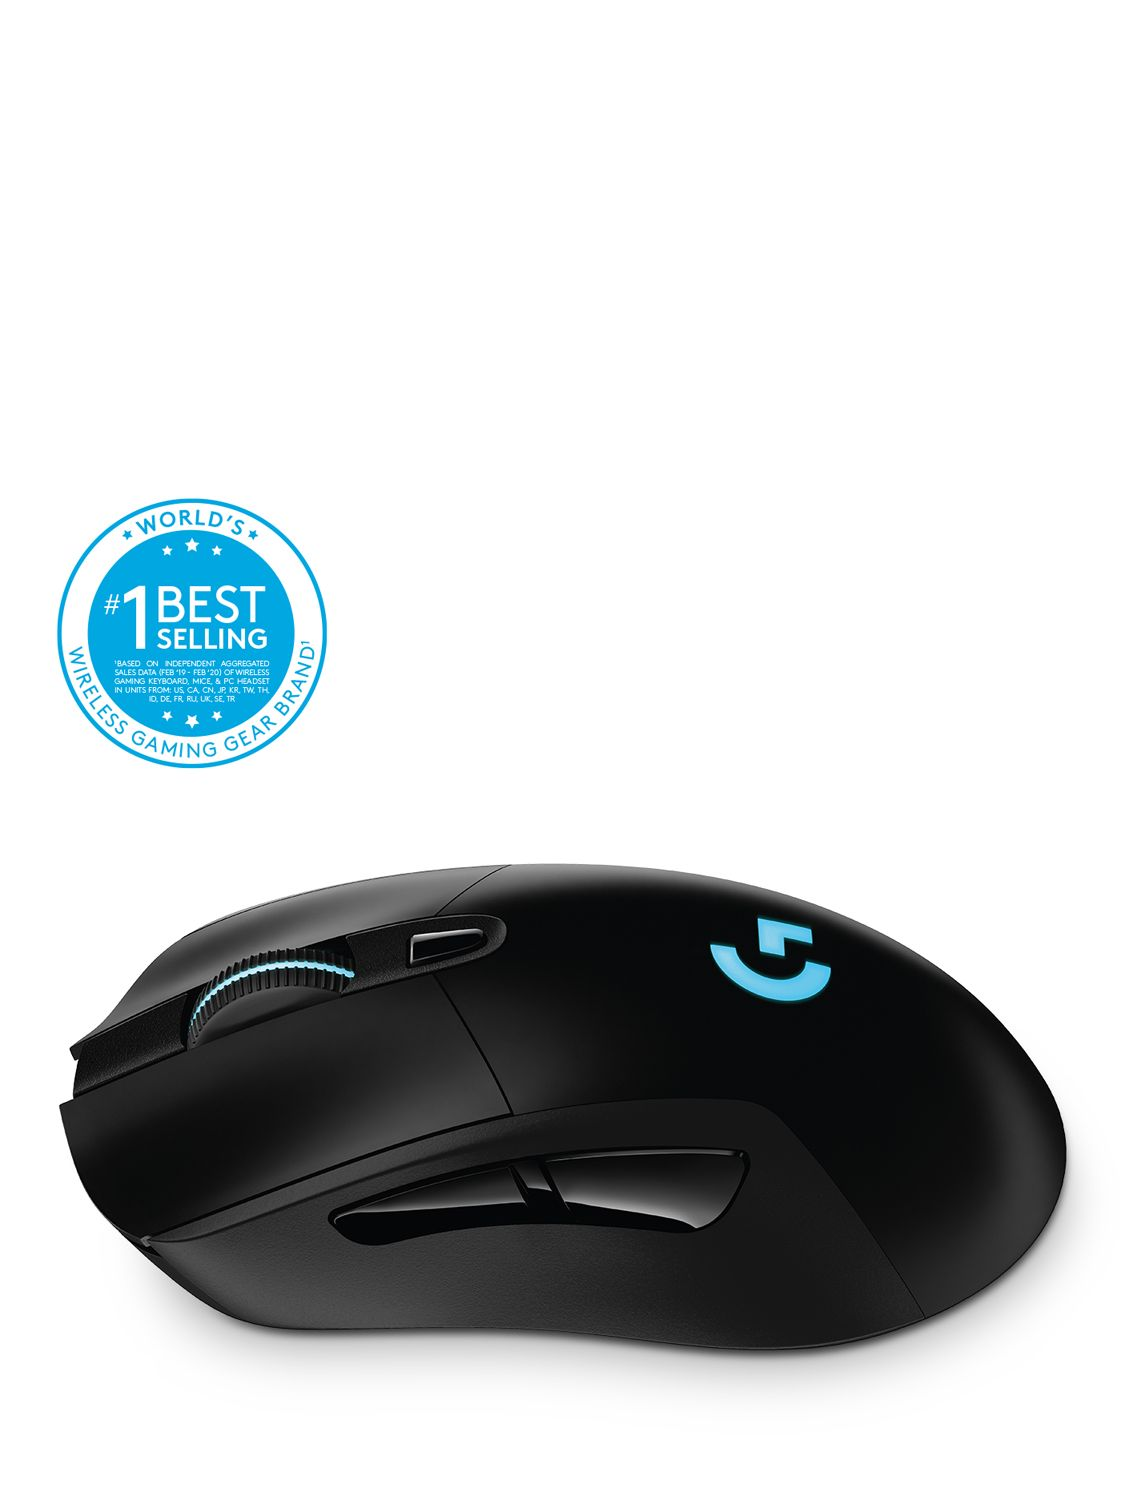 Logitech Logitech G703 Lightspeed Wireless Gaming Mouse